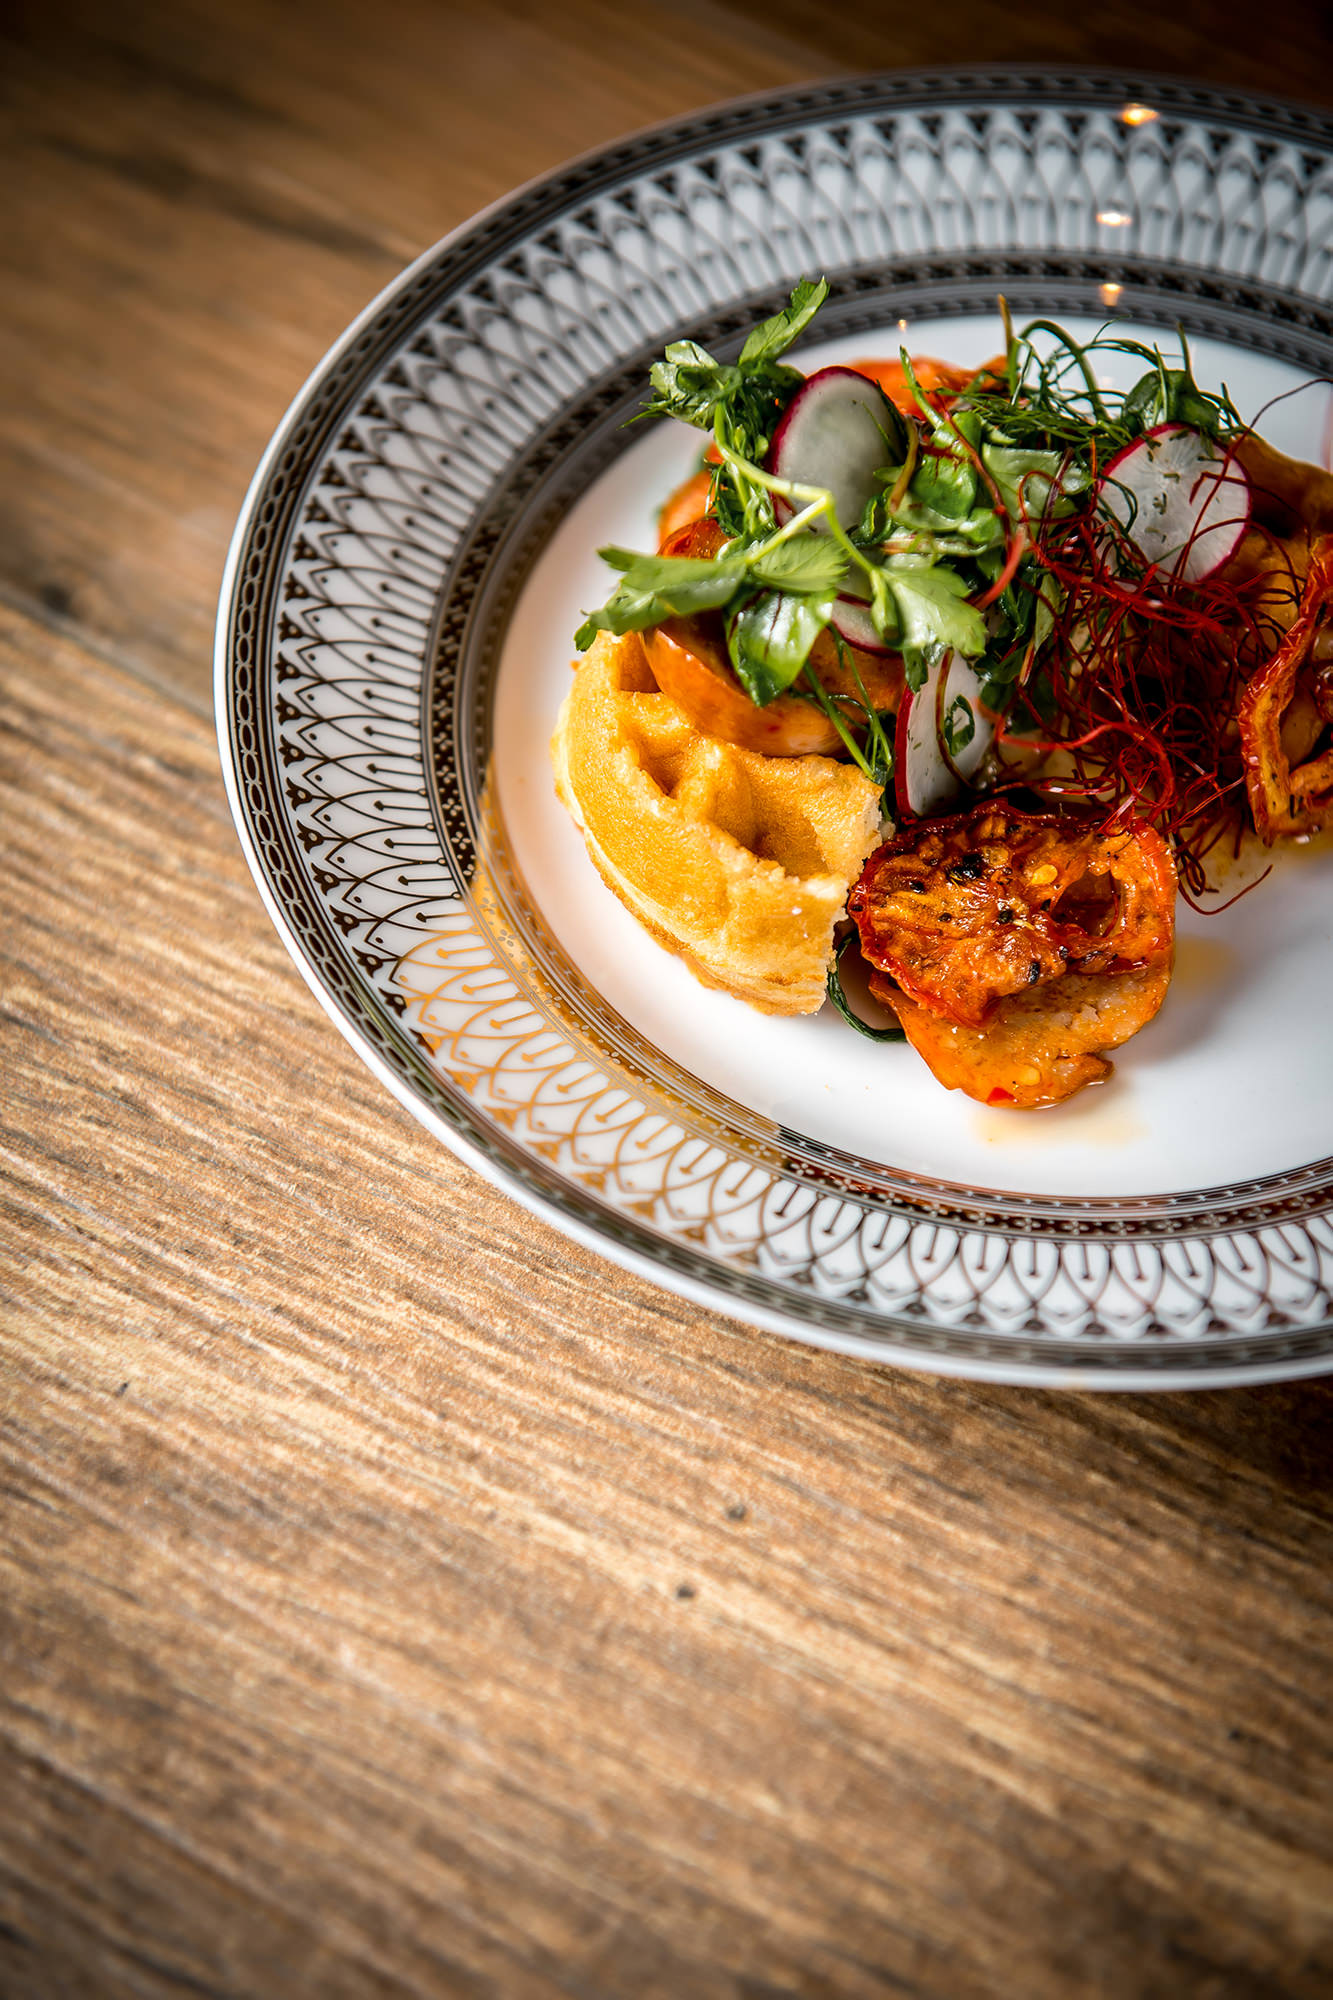 Chef Dinner - Chicken And Waffles